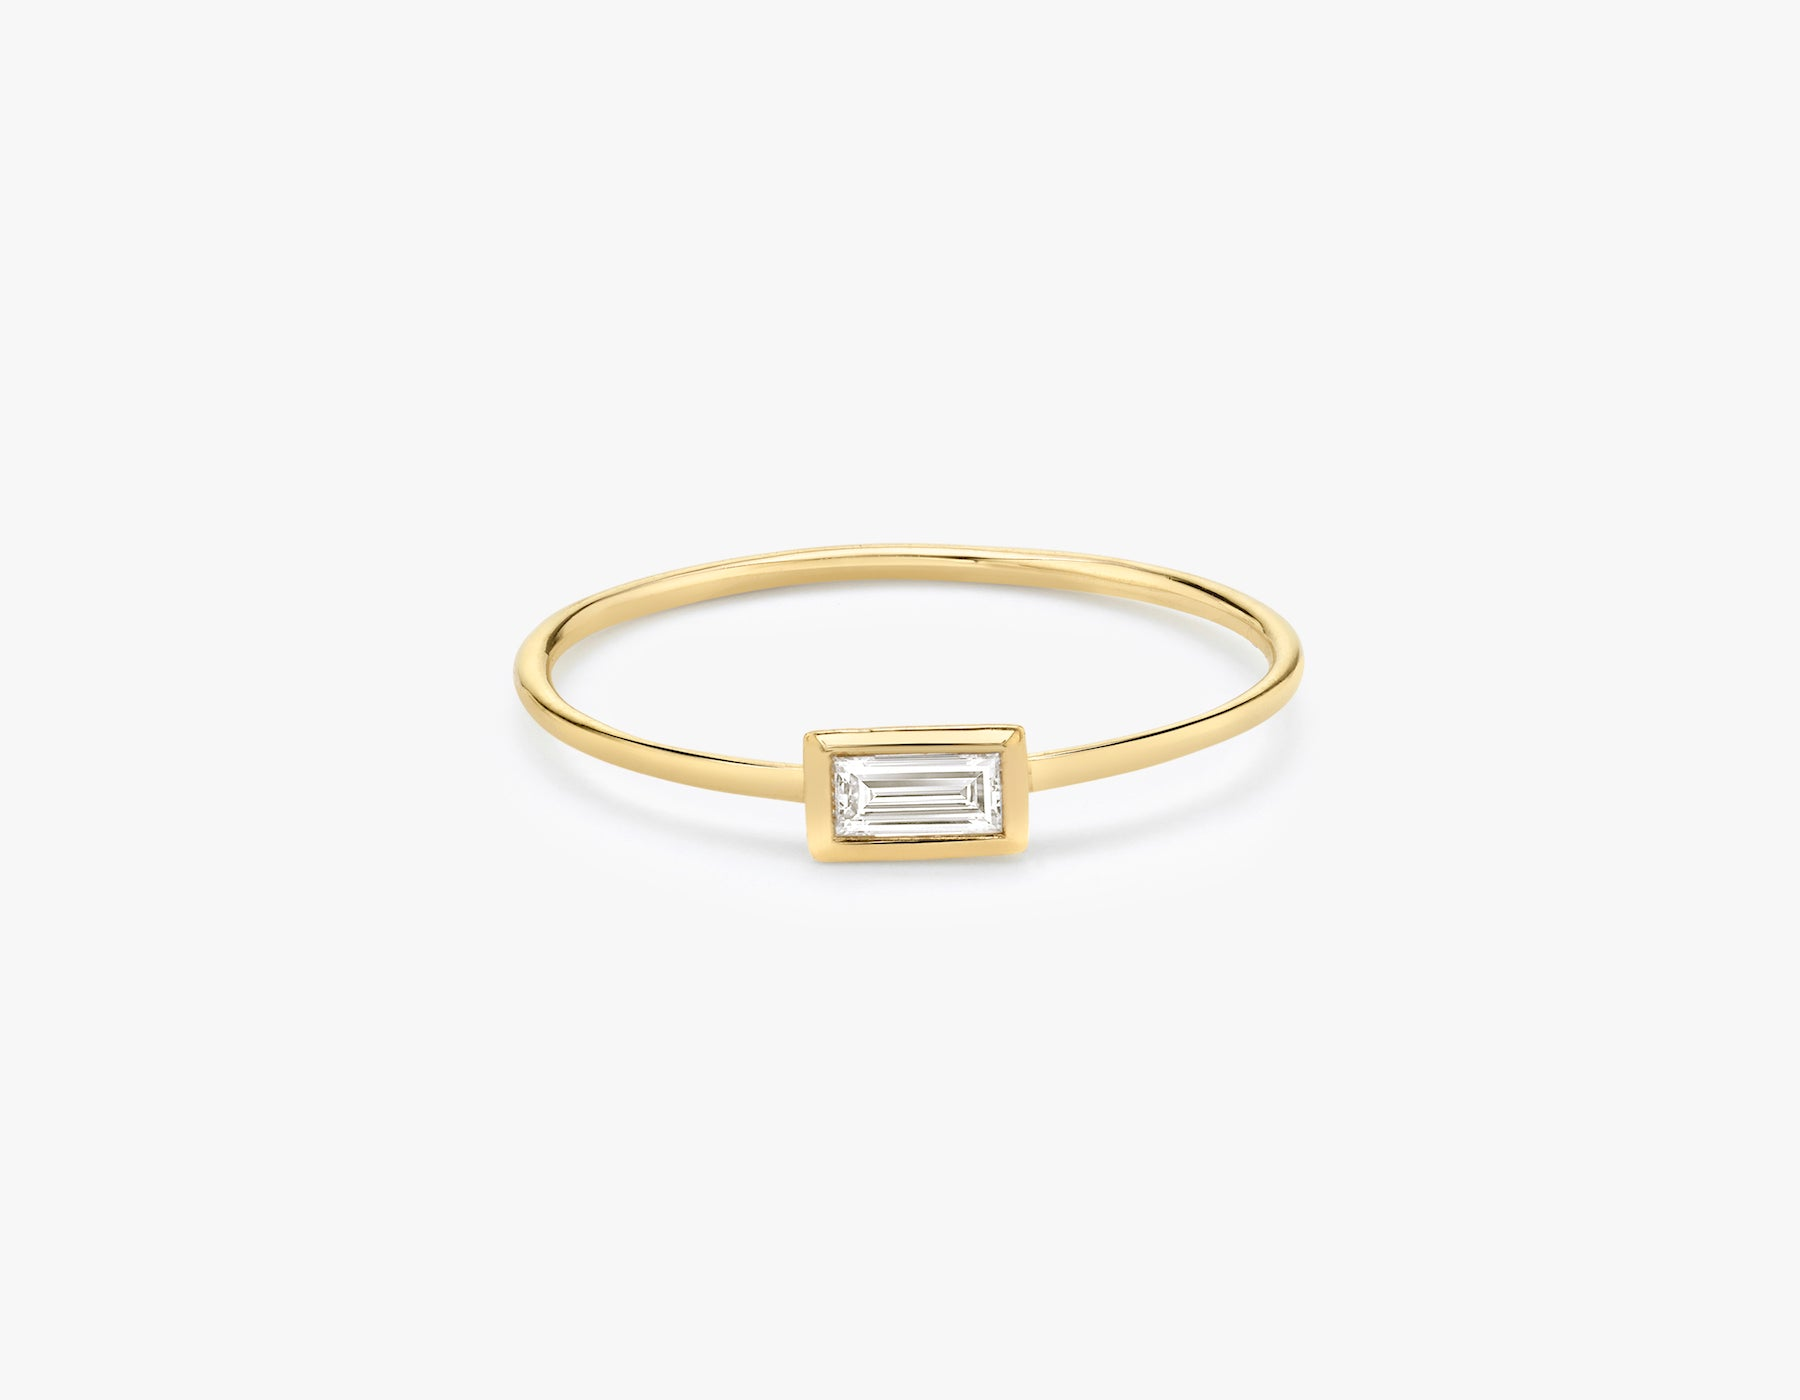 Vrai classic minimalist Baguette Diamond Bezel Ring, 14K Yellow Gold